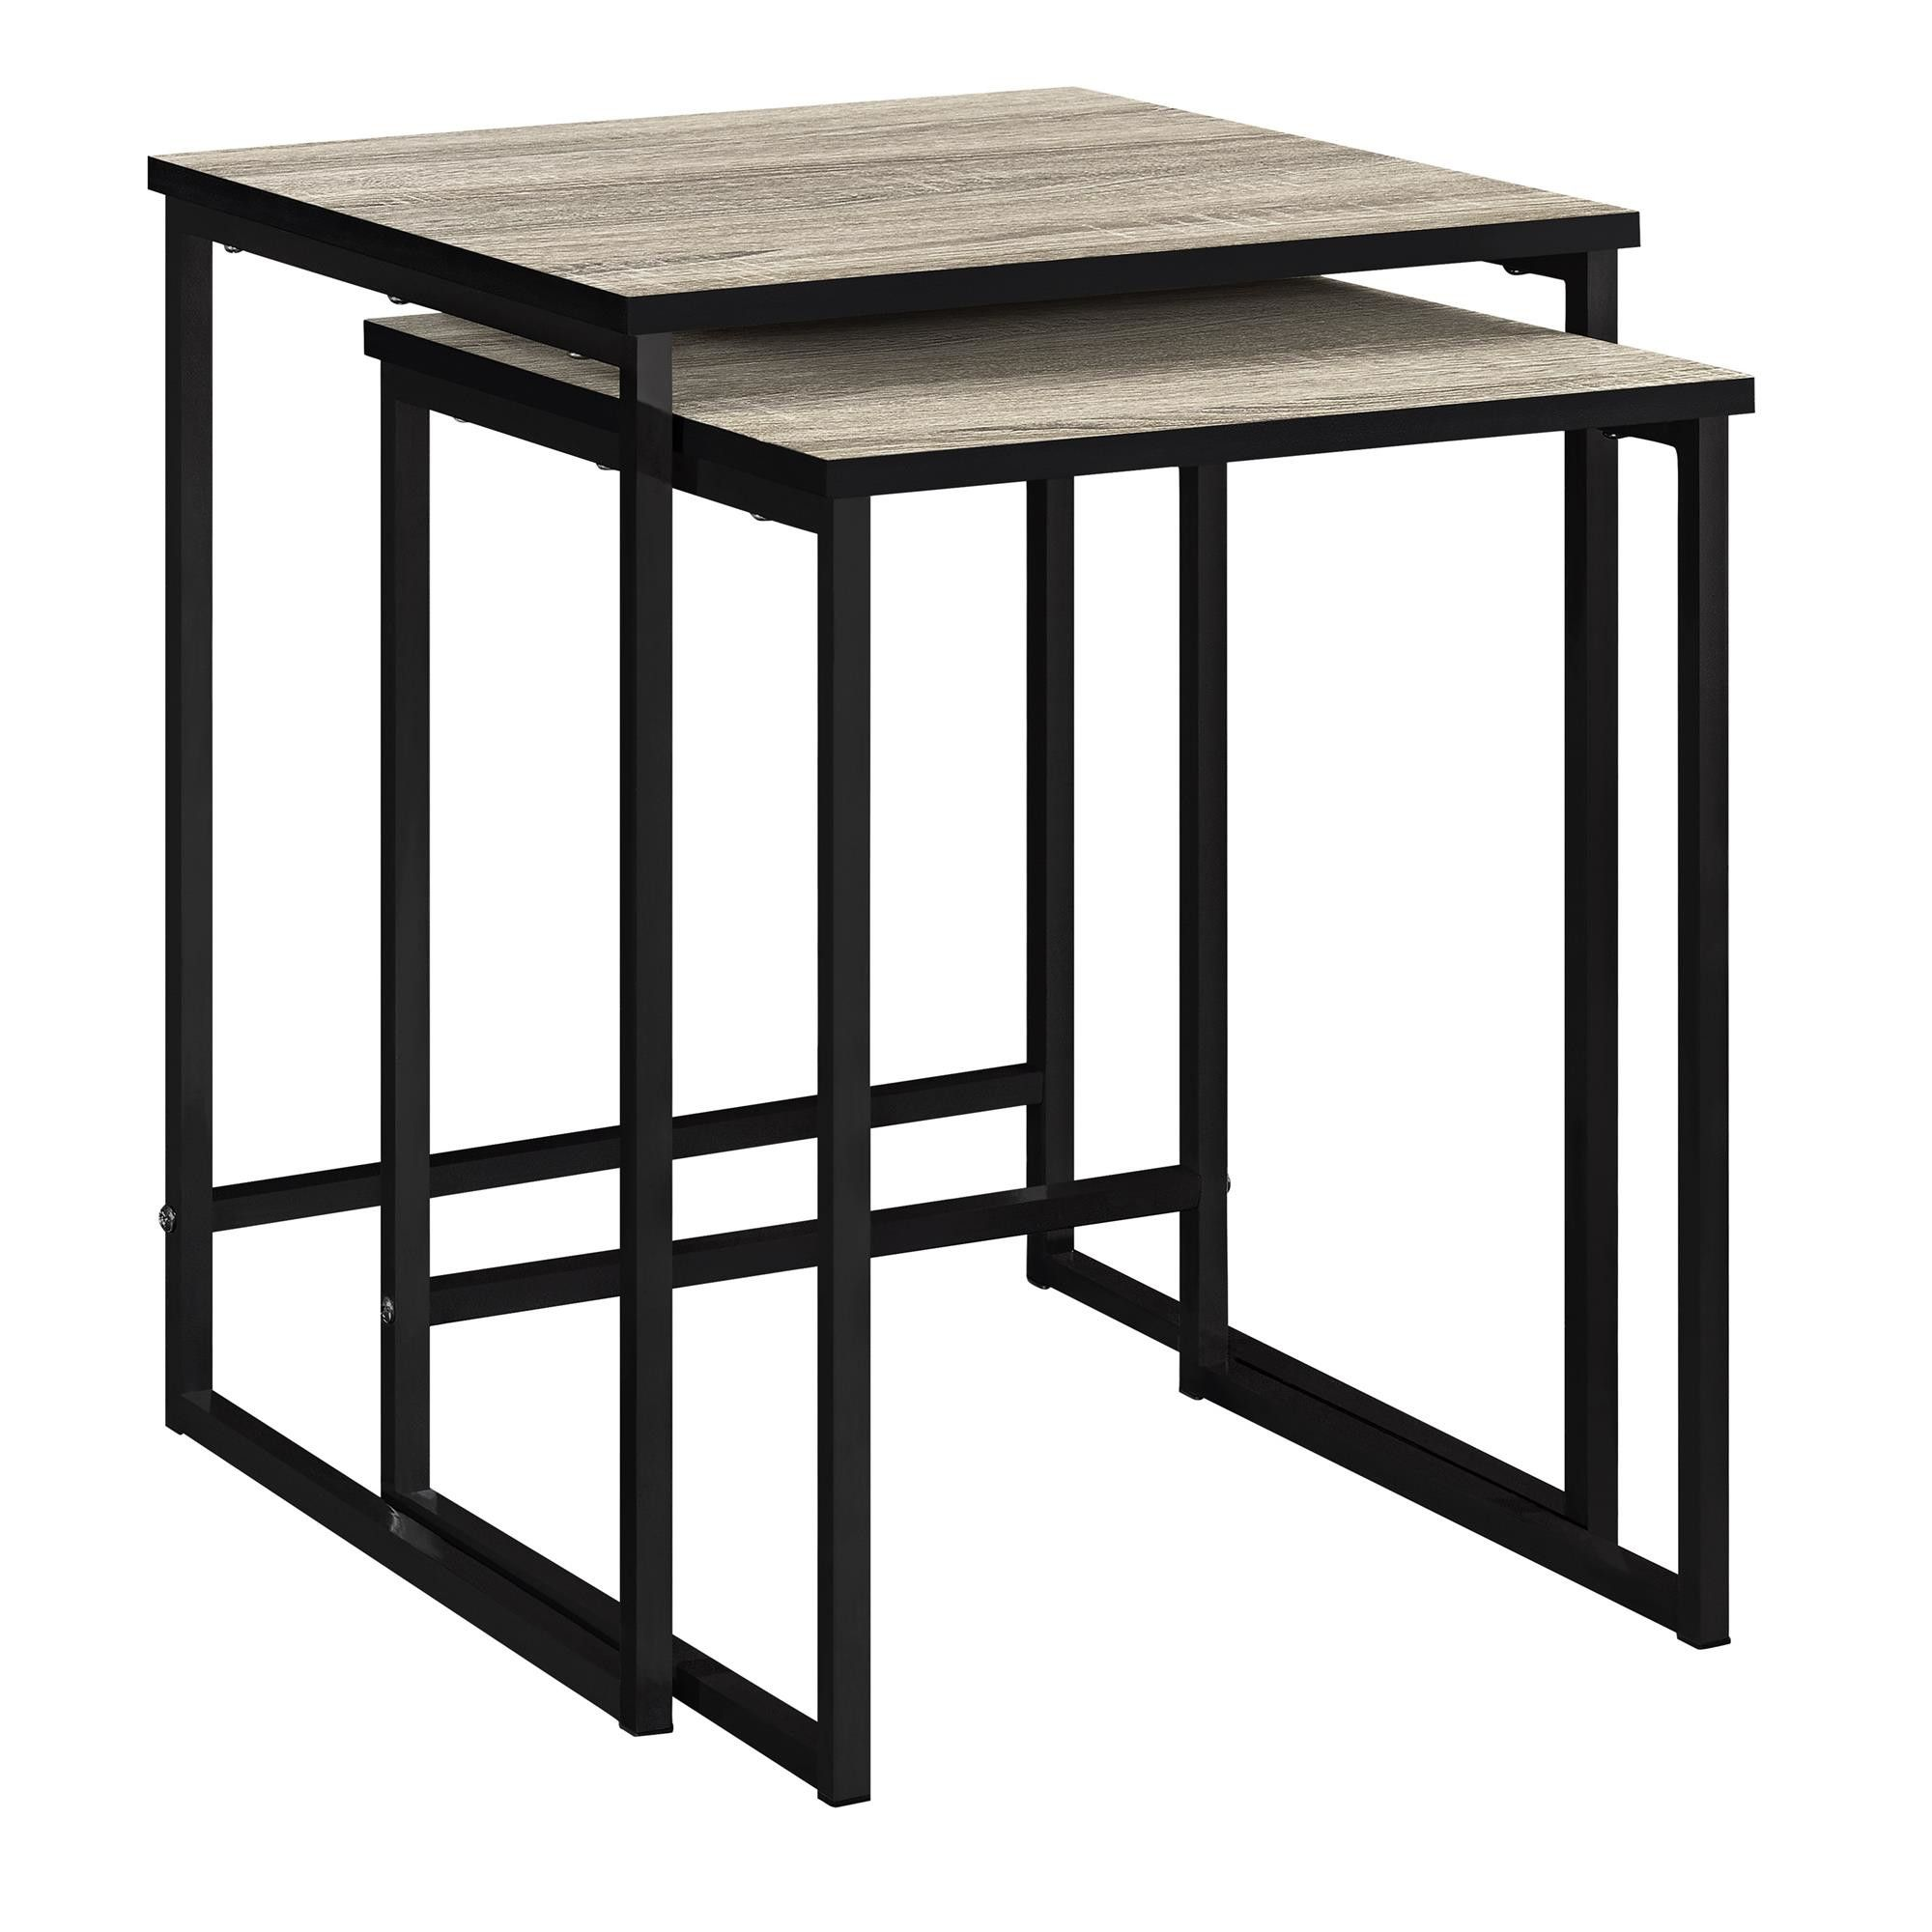 Perfect Nesting Table For Living Room Staging Sousanna 2 Piece